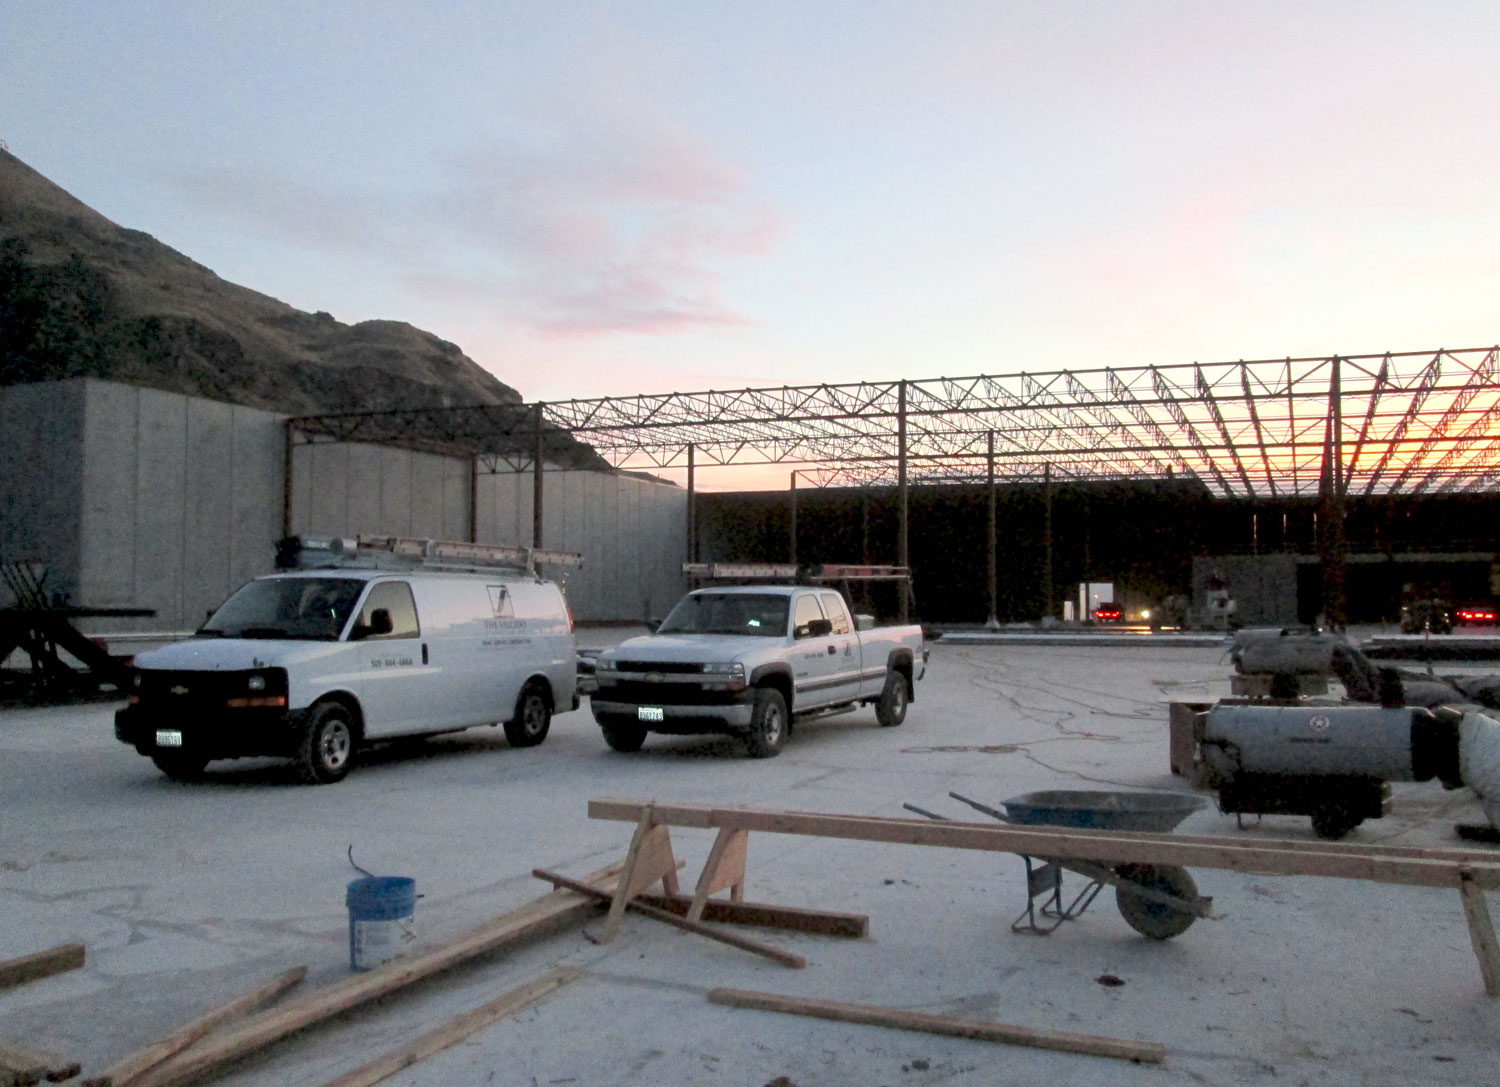 Sunrise work at the McDougall's 45,000-bin Controlled Atmosphere Storage facility